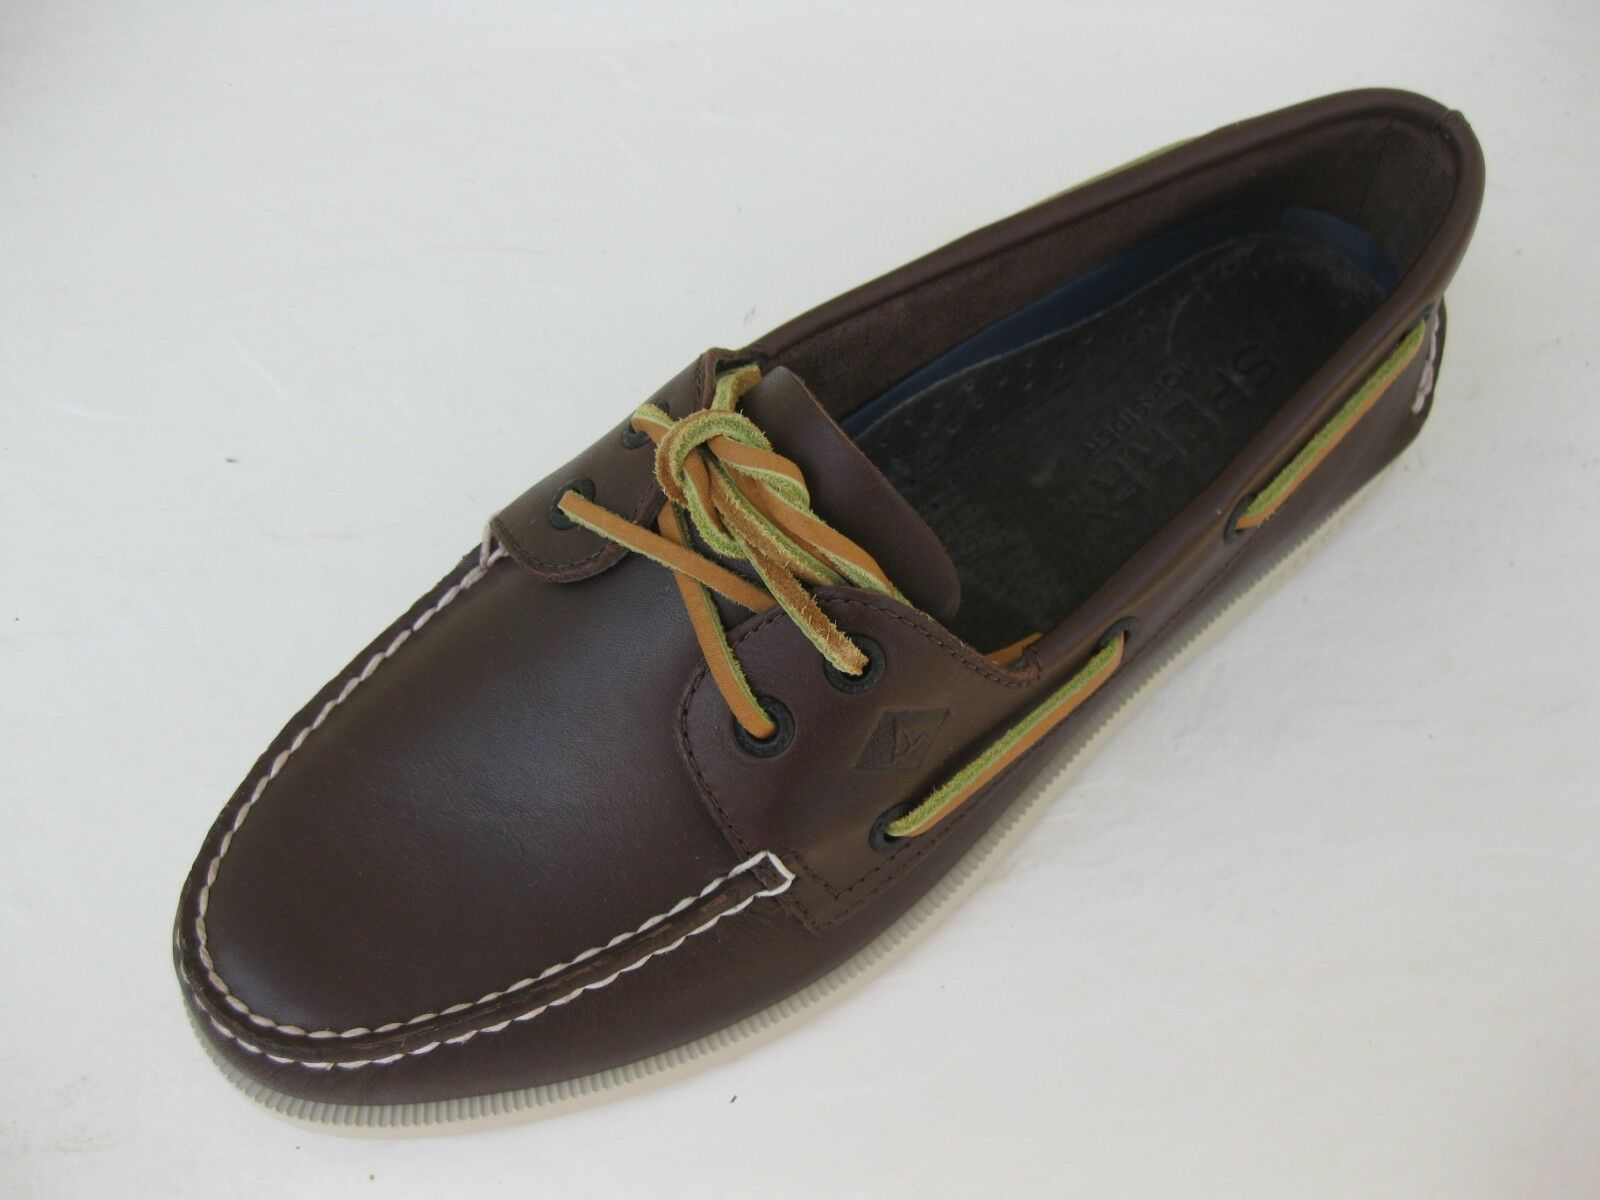 Sperry Topsider Mens shoes NEW  0195115 A O 2 Eye Dark Brown Boat 13 M